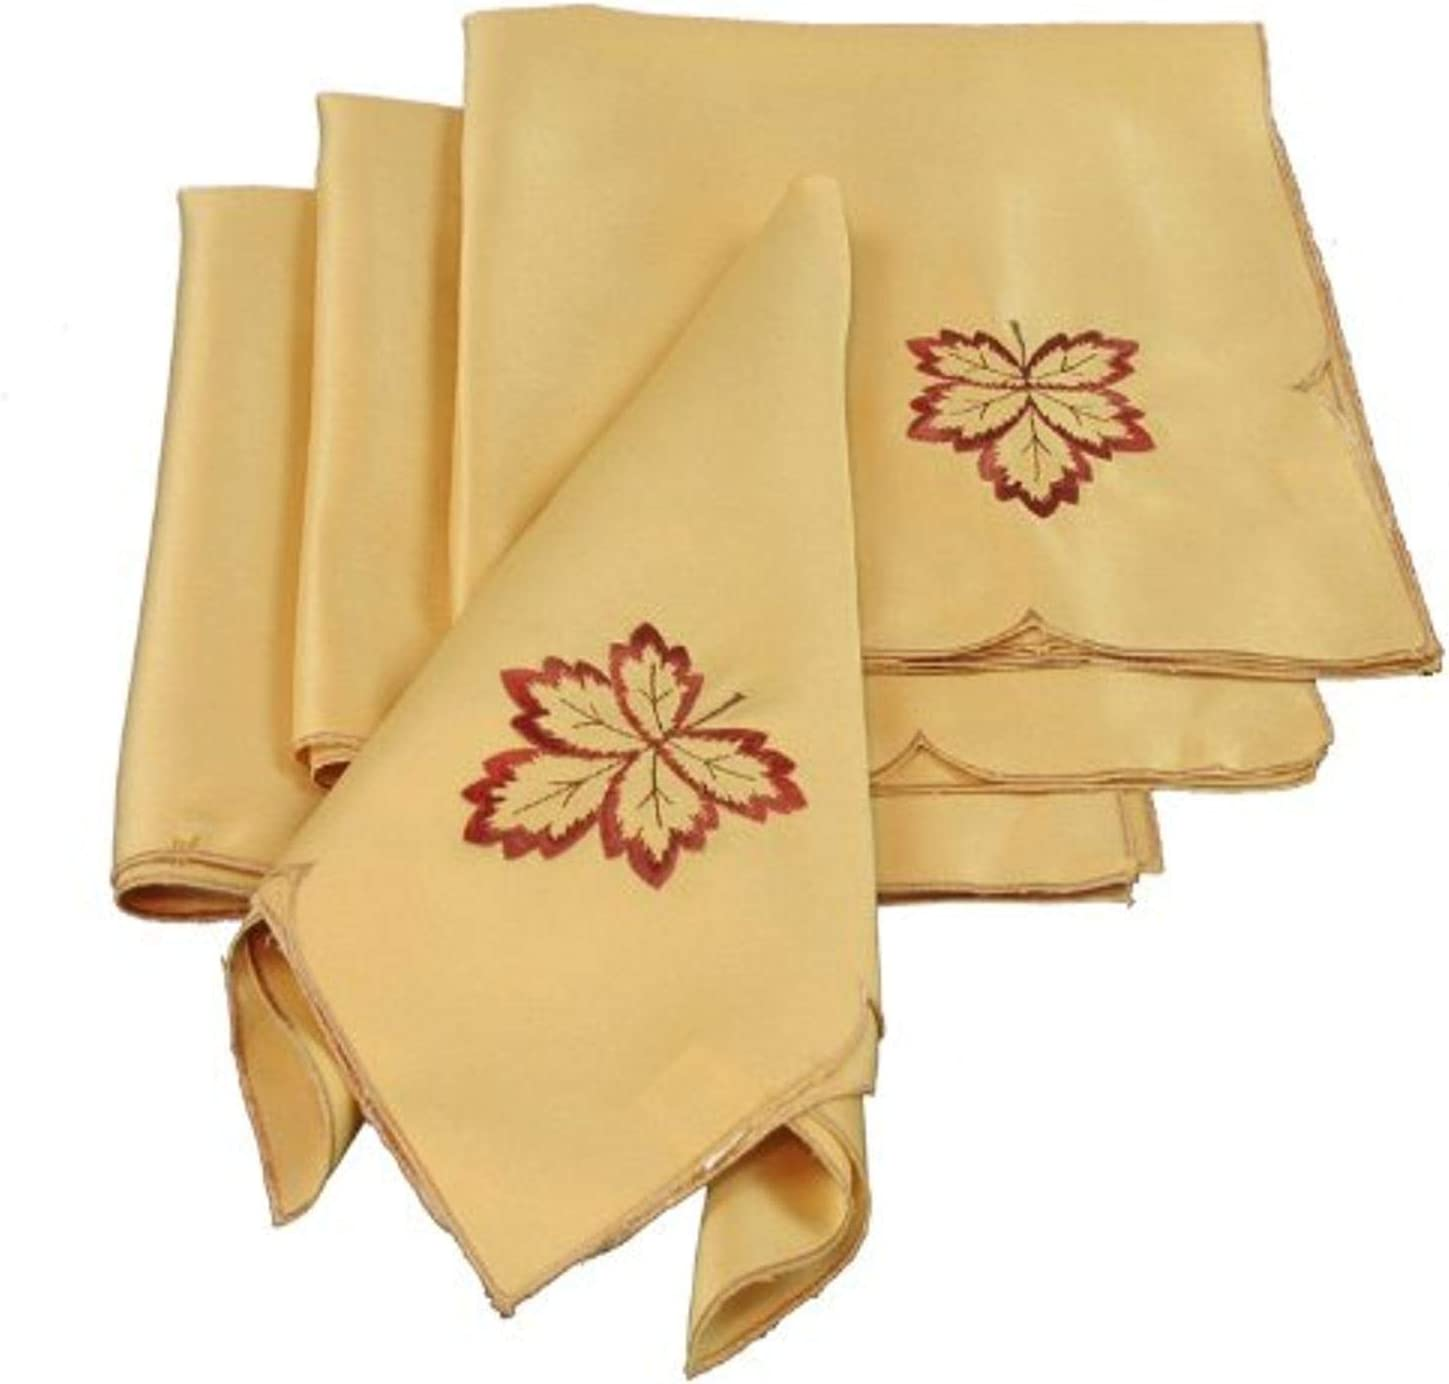 Xia Home Fashions Bountiful Leaf Embroidered Cutwork Harvest Fall Napkins, 21 by 21-Inch, Set of 4